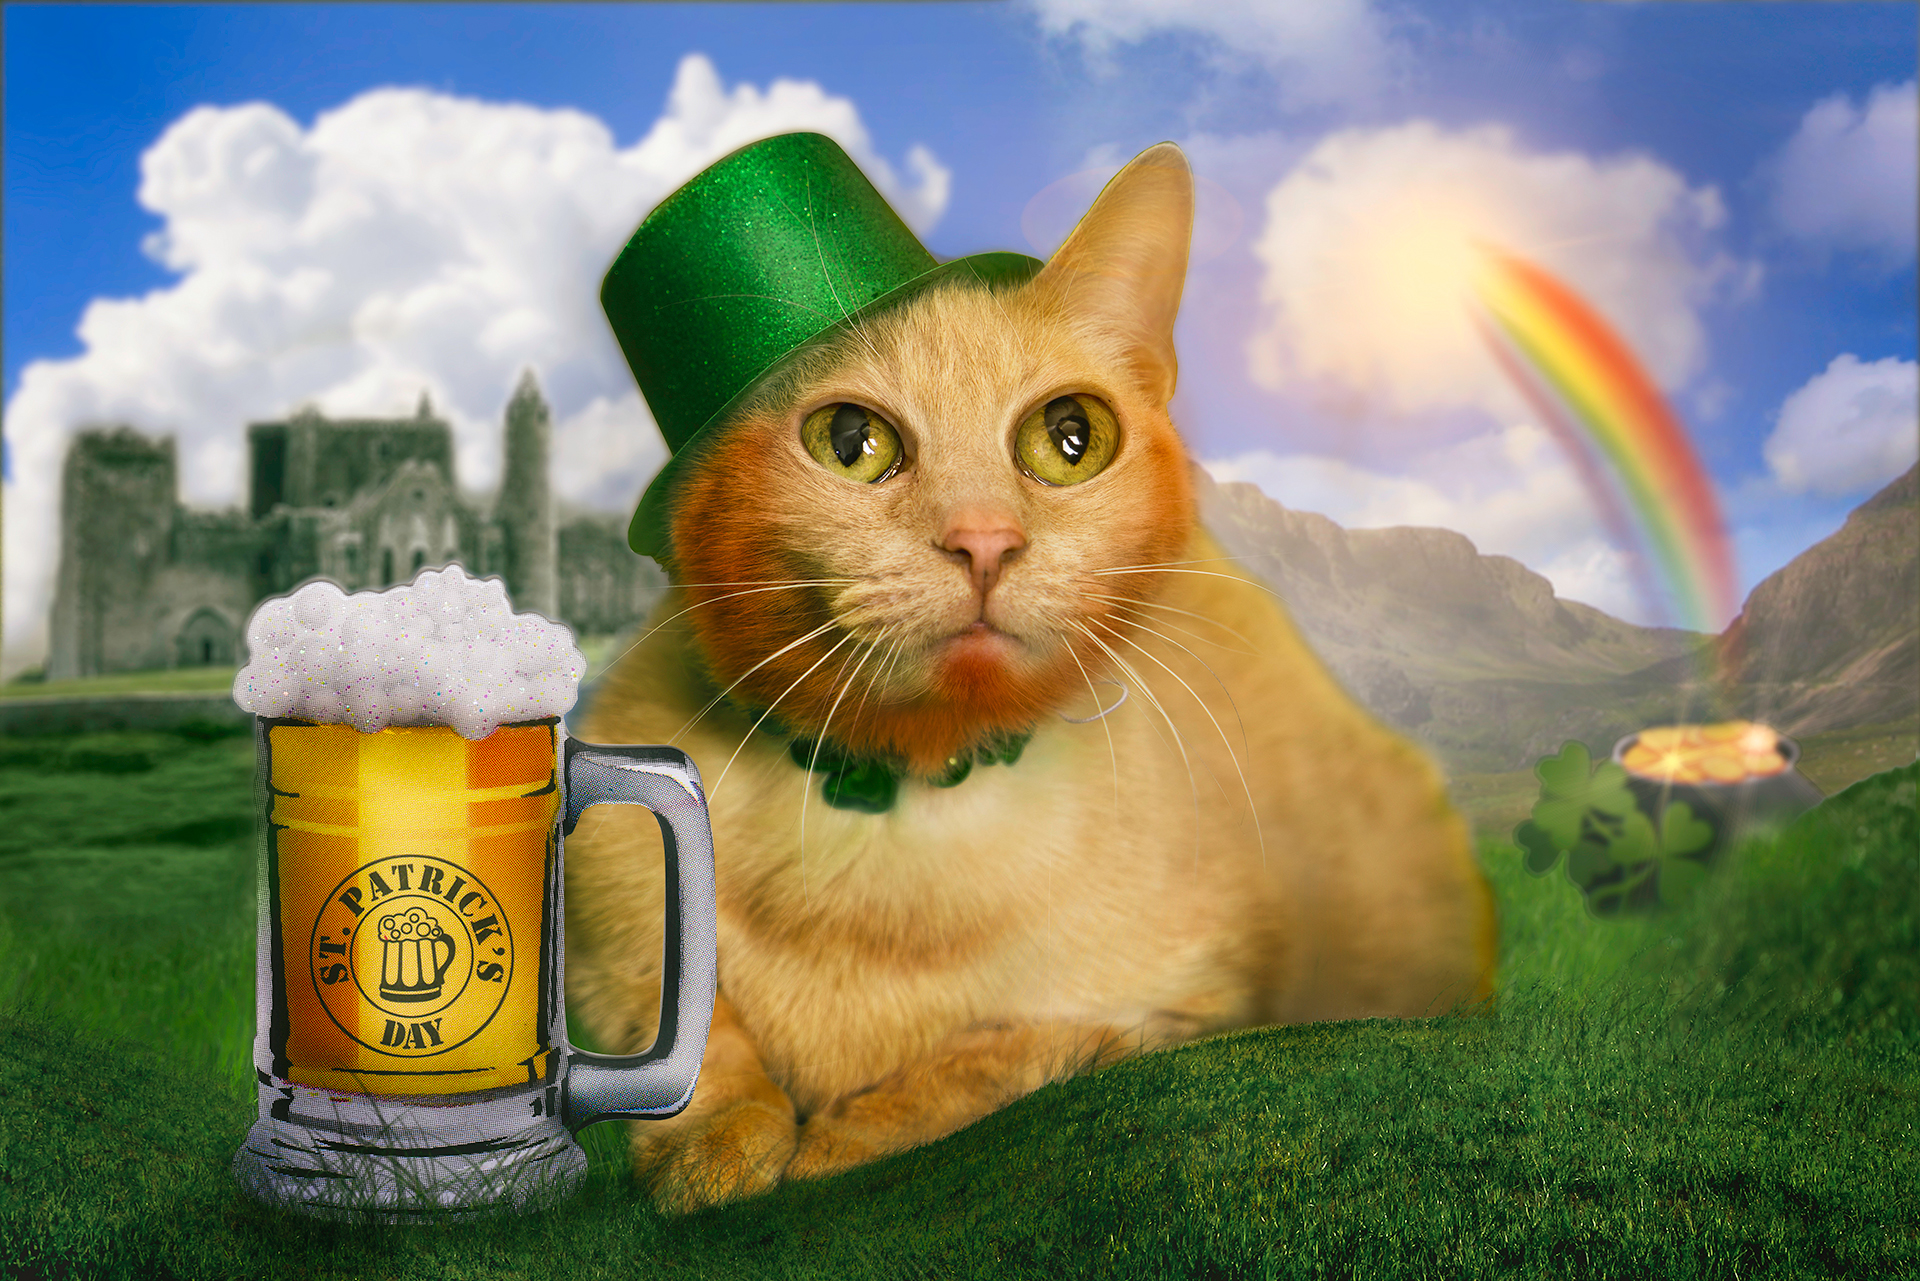 Kevin the Cat steals our hearts while we try to steal this leprechaun's gold. Everyone is a little Irish this St. Patrick's Day!